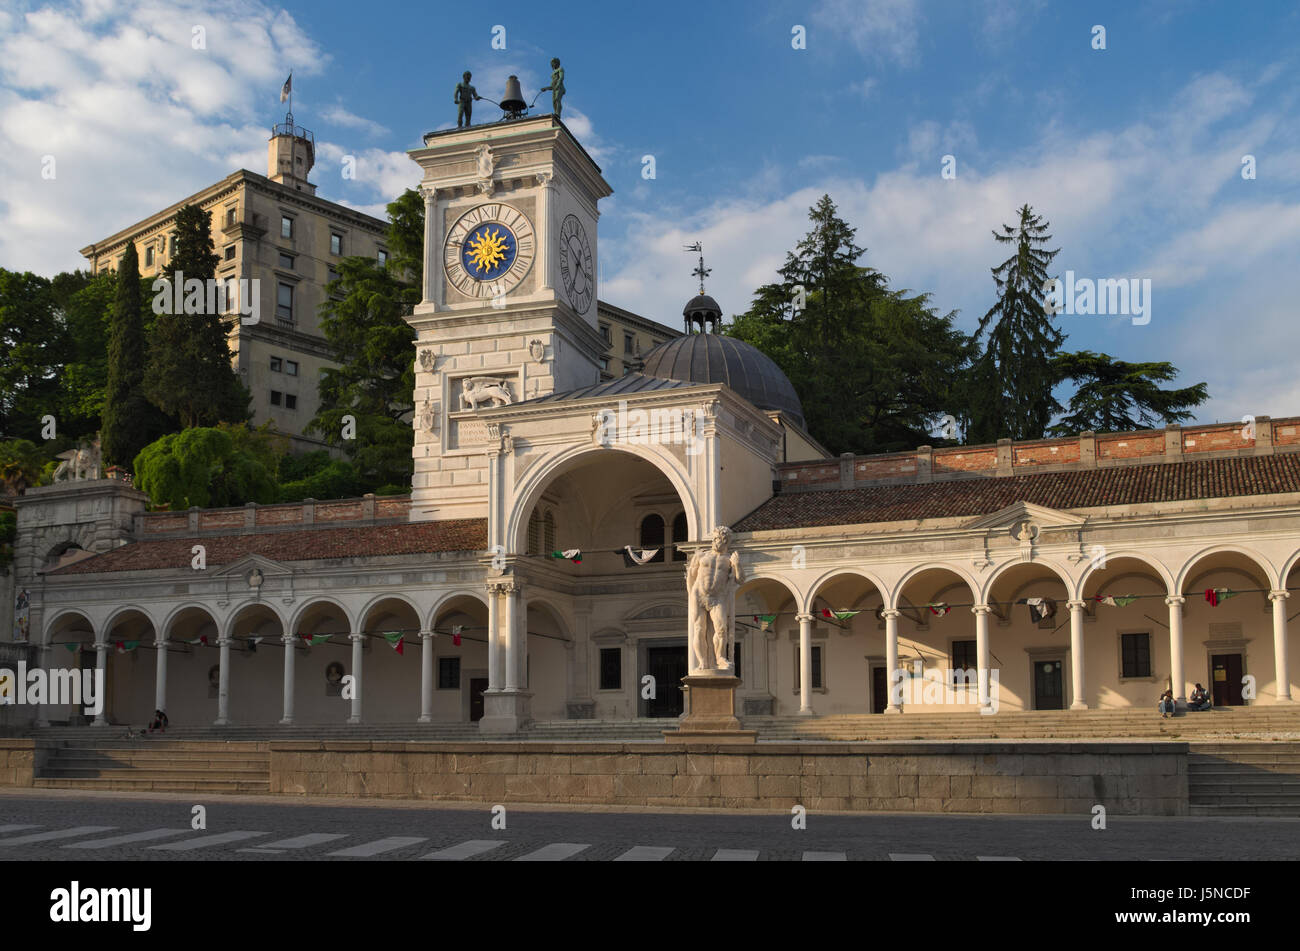 Udine: Piazza Libertà, the oldest square of the town. View of the castle, bell tower and St. John's Loggia - Stock Image